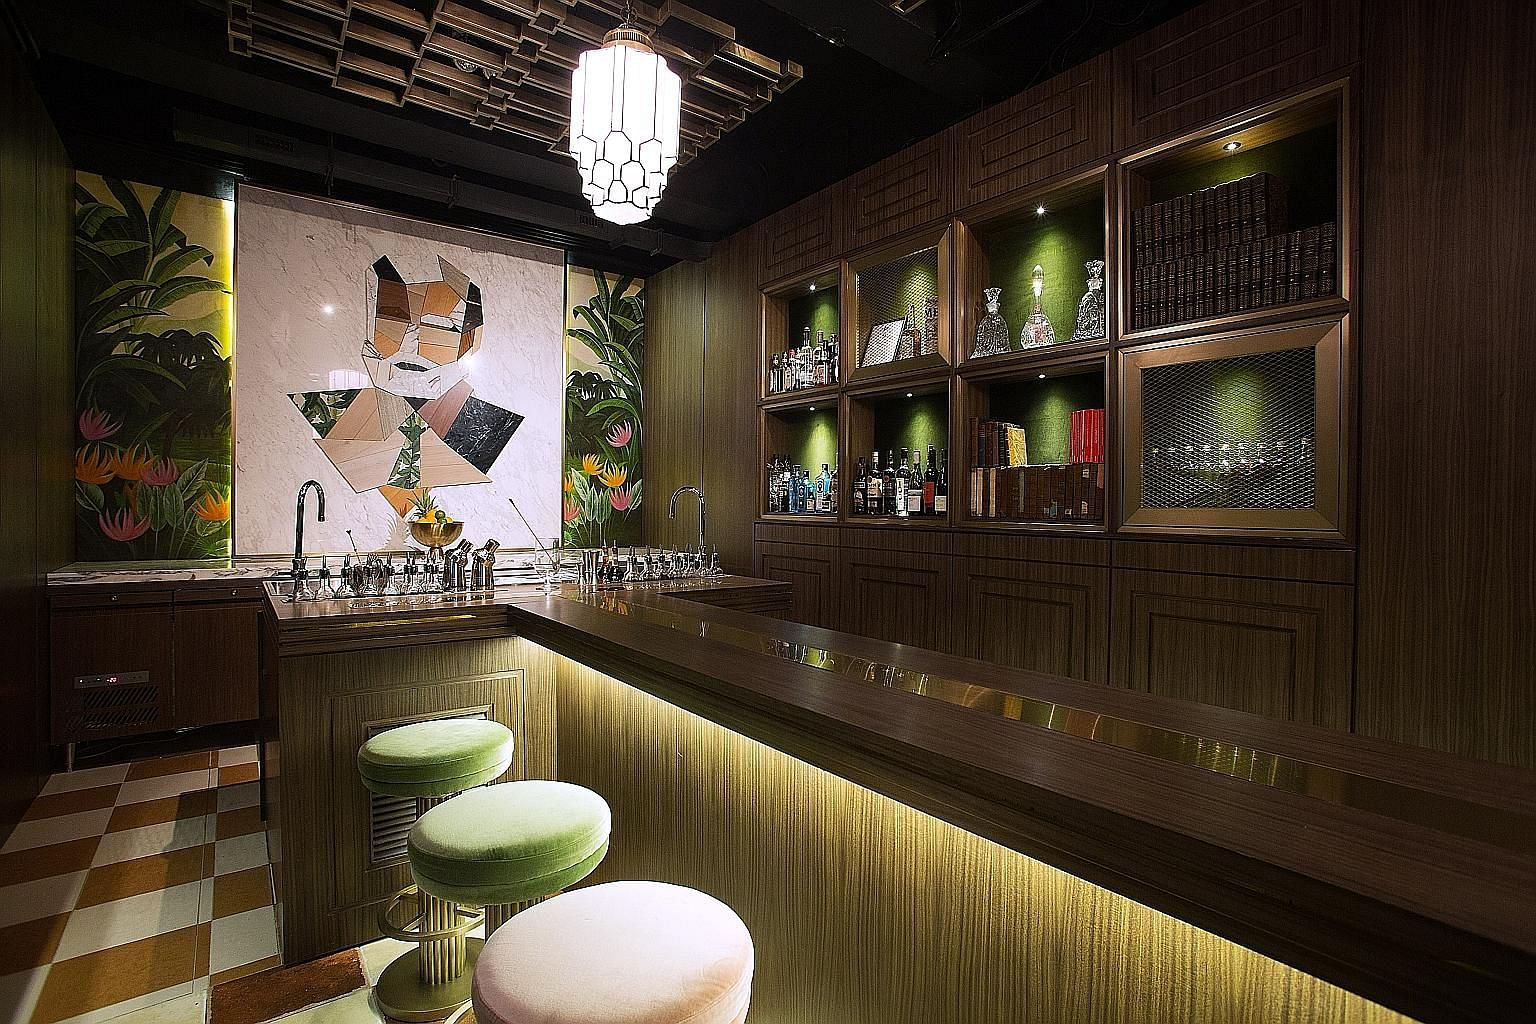 The Old Man cocktail bar was conceived by Mr Agung Prabowo, among other bartenders.